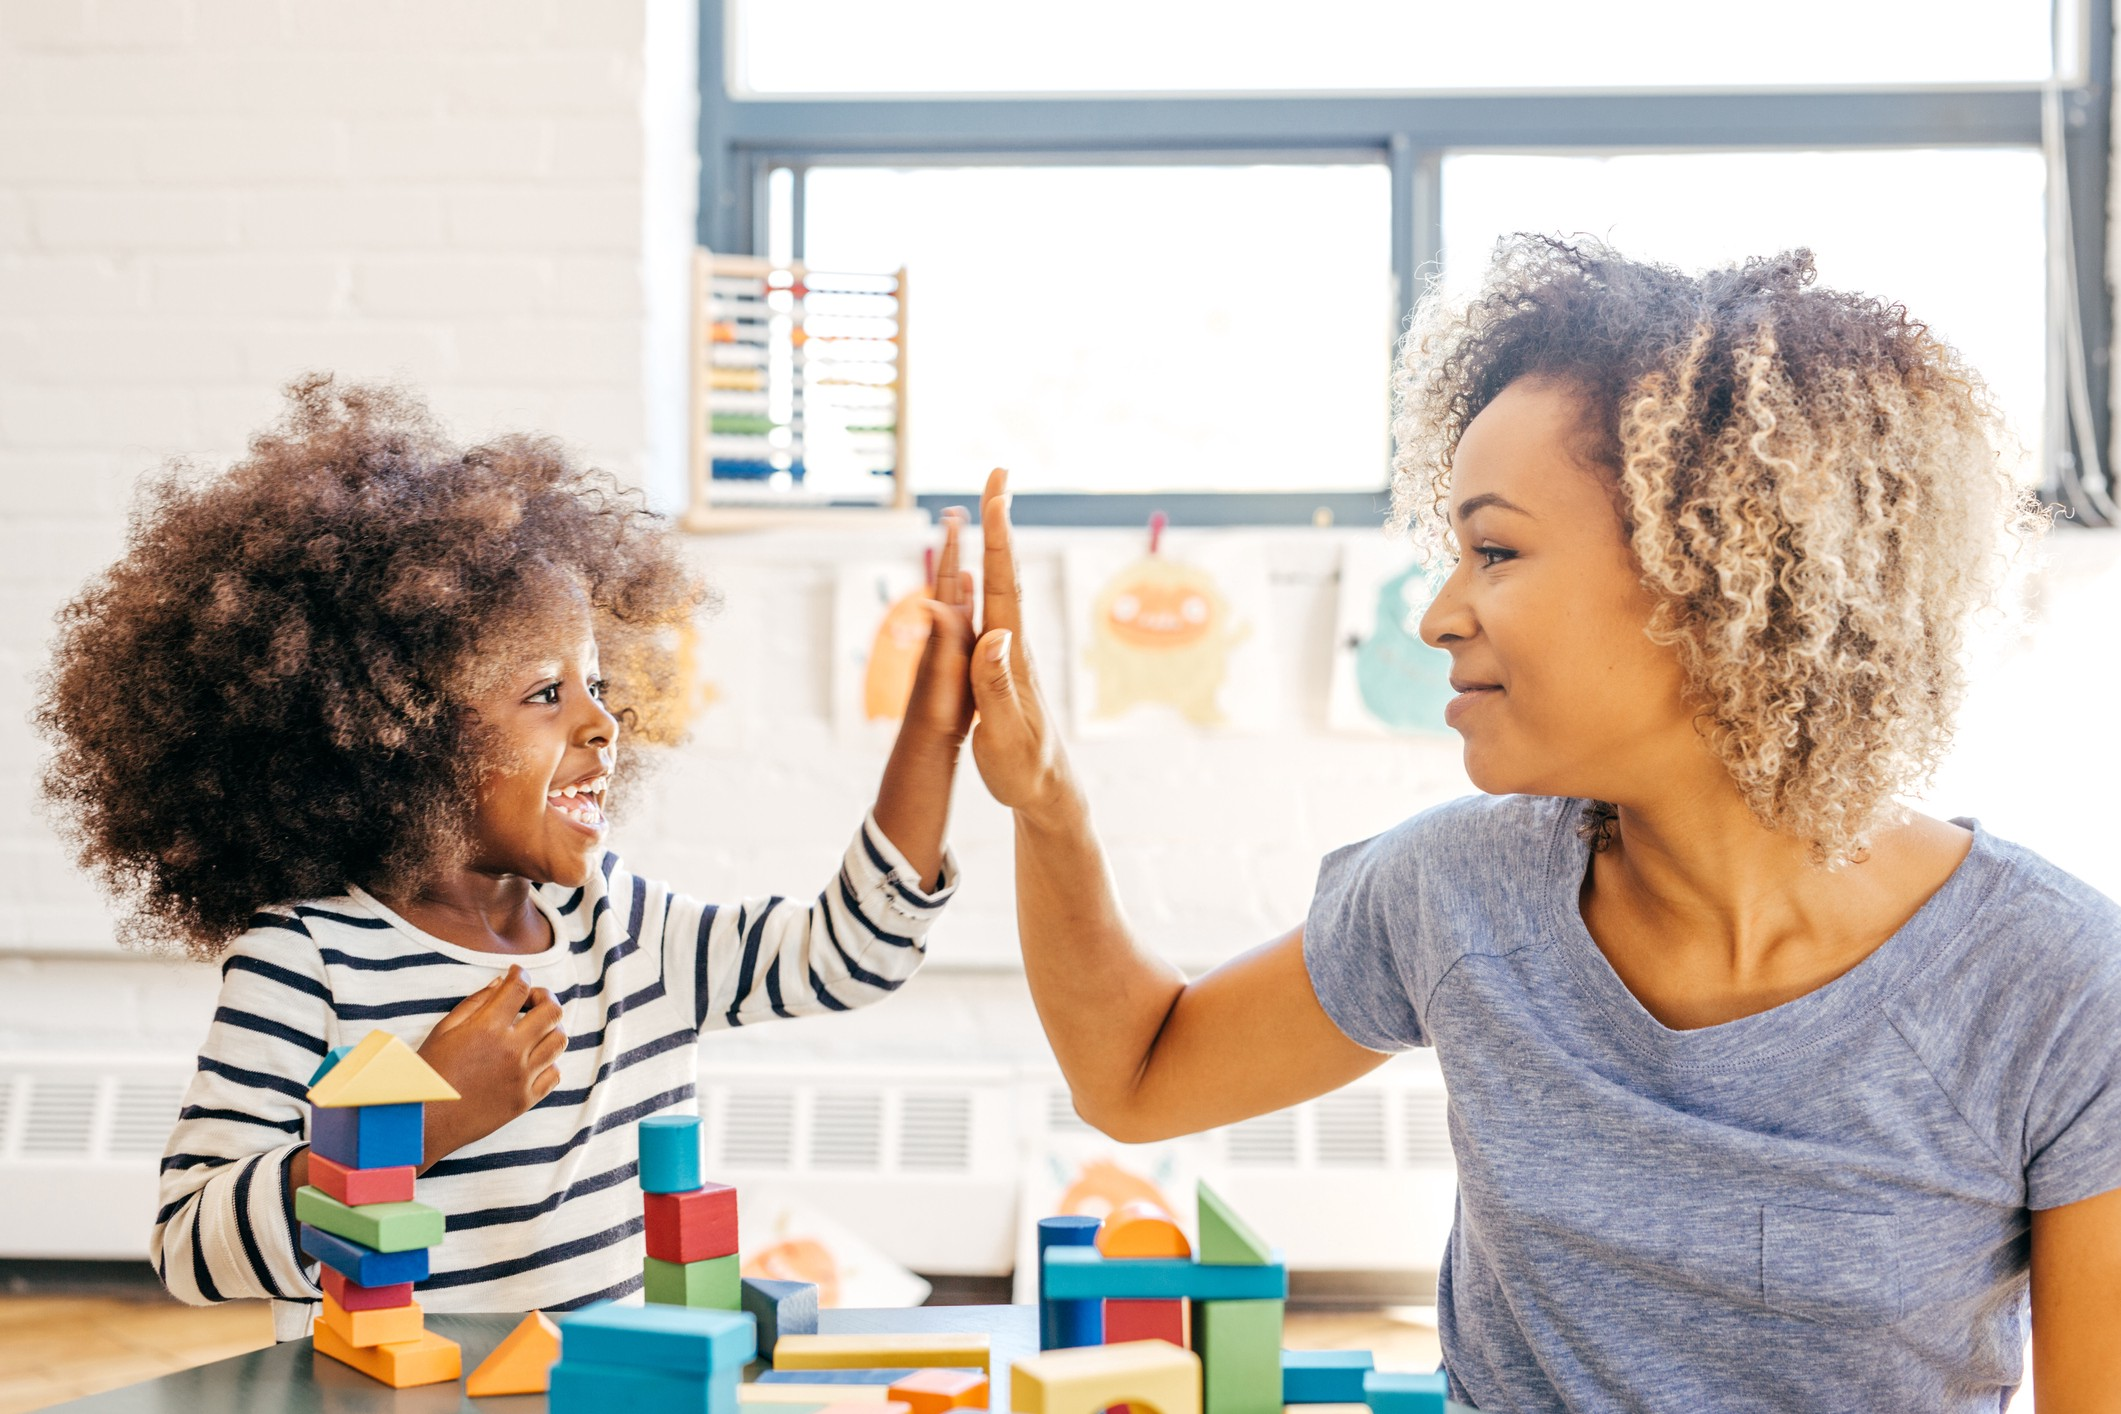 A photo of a mom and her young child high fiving as the kid plays with blocks.